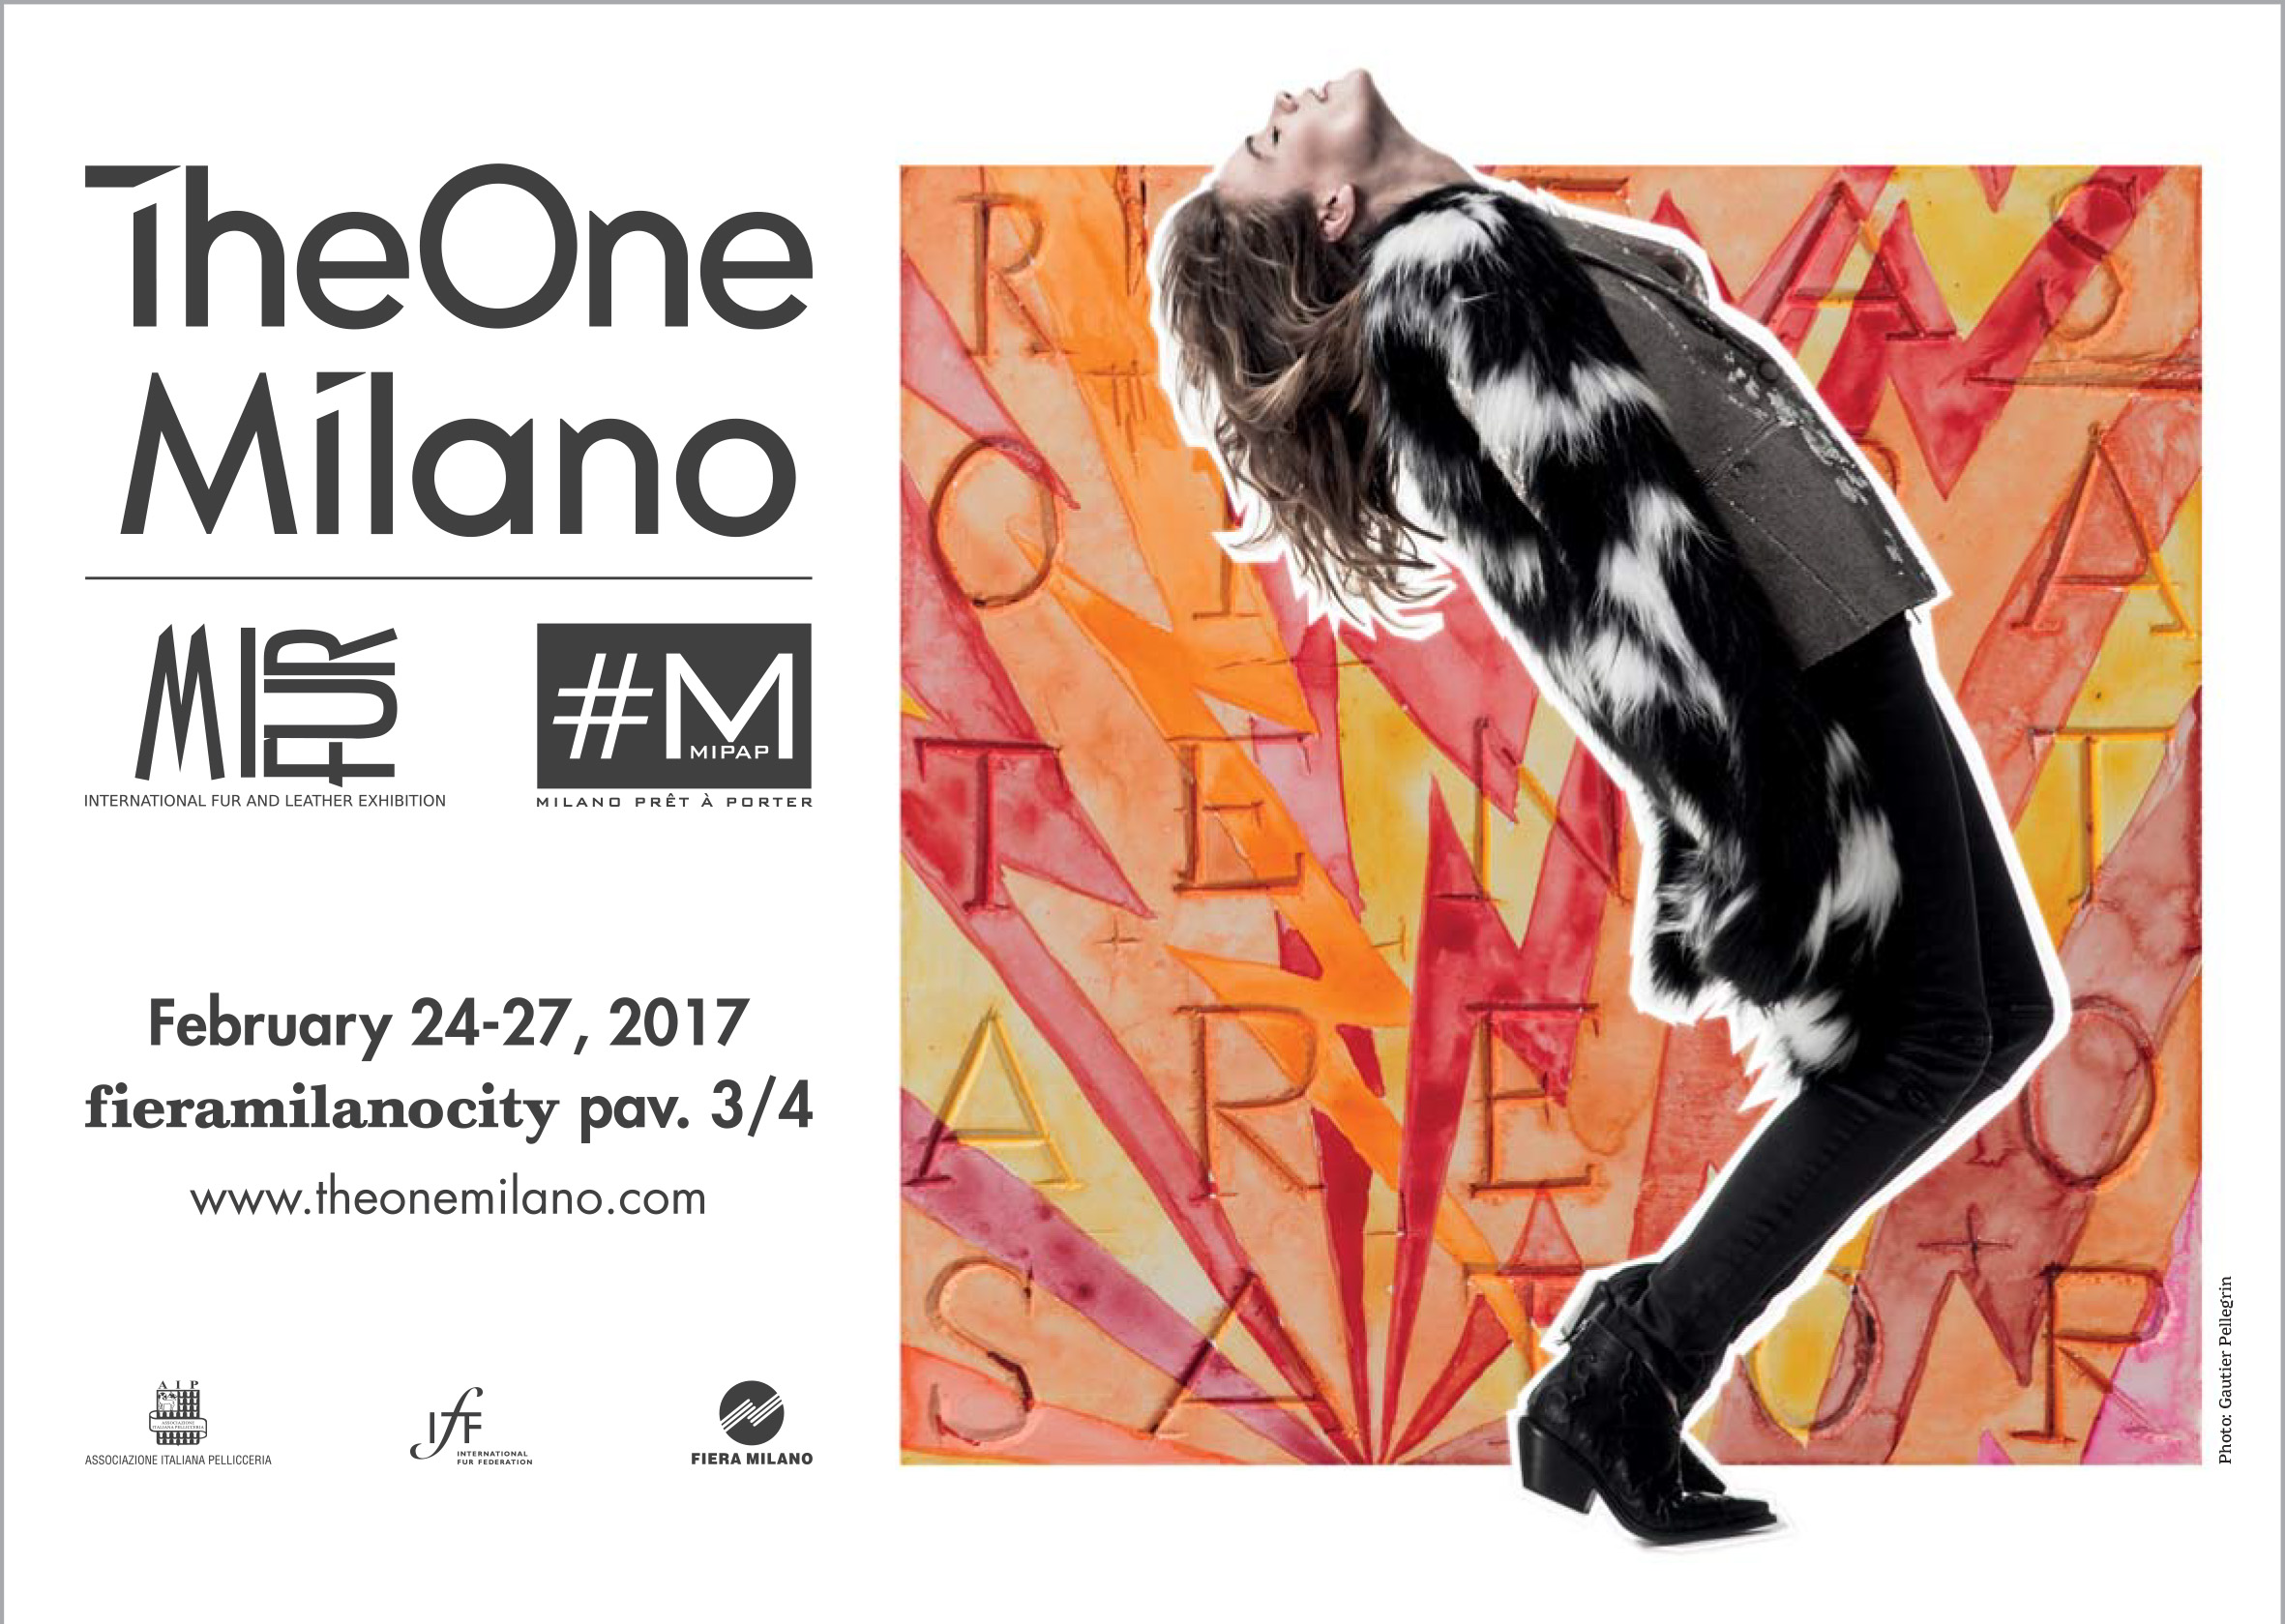 THE ONE Feb 2017 - INVITO Esp...